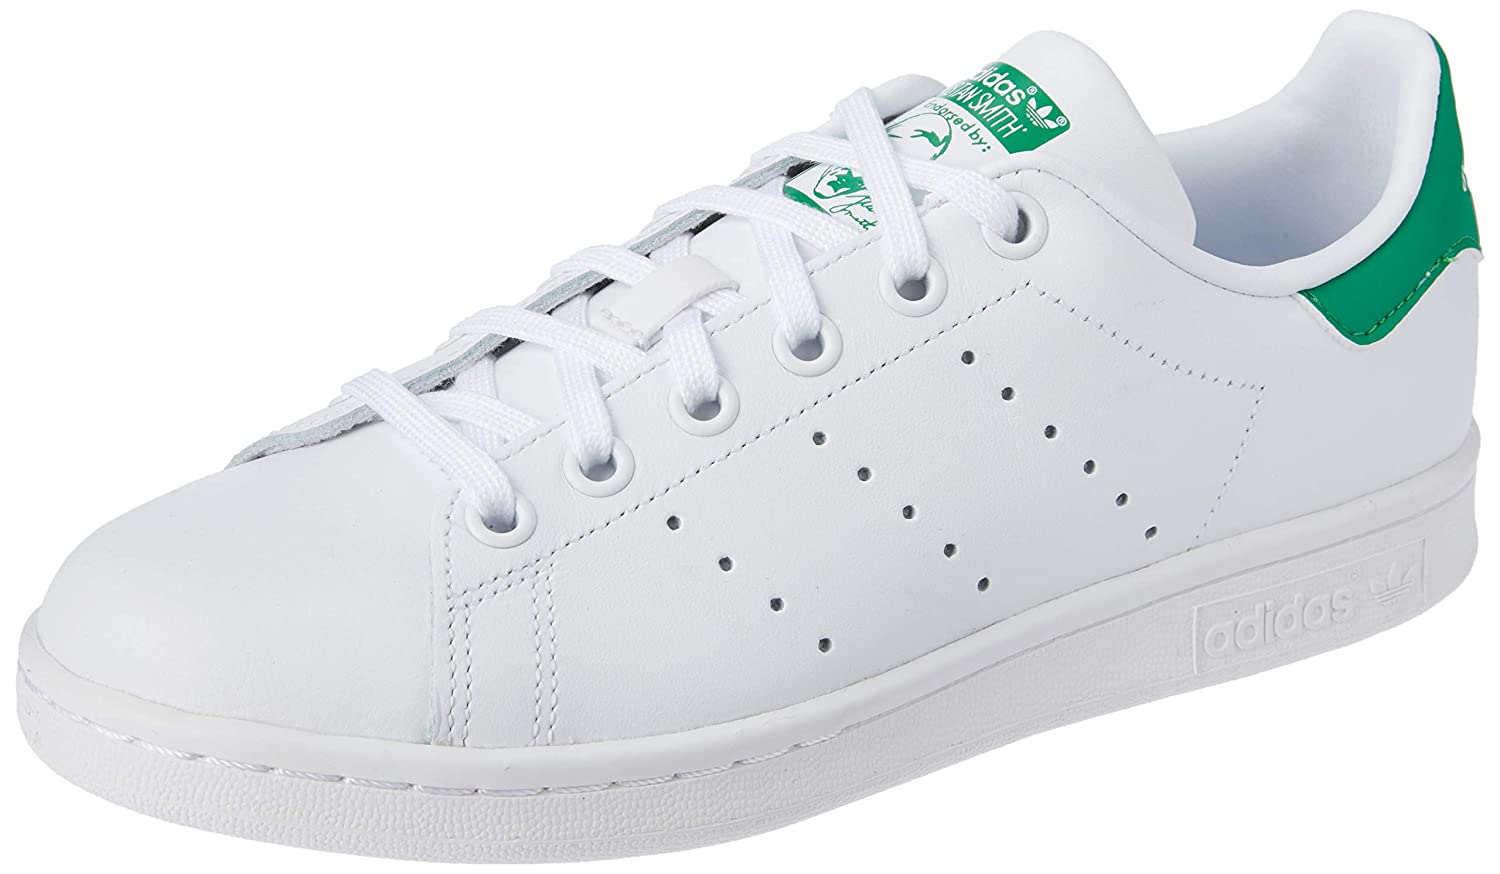 factory outlet sells super quality adidas Originals Stan Smith J Kids Sneaker White M20605